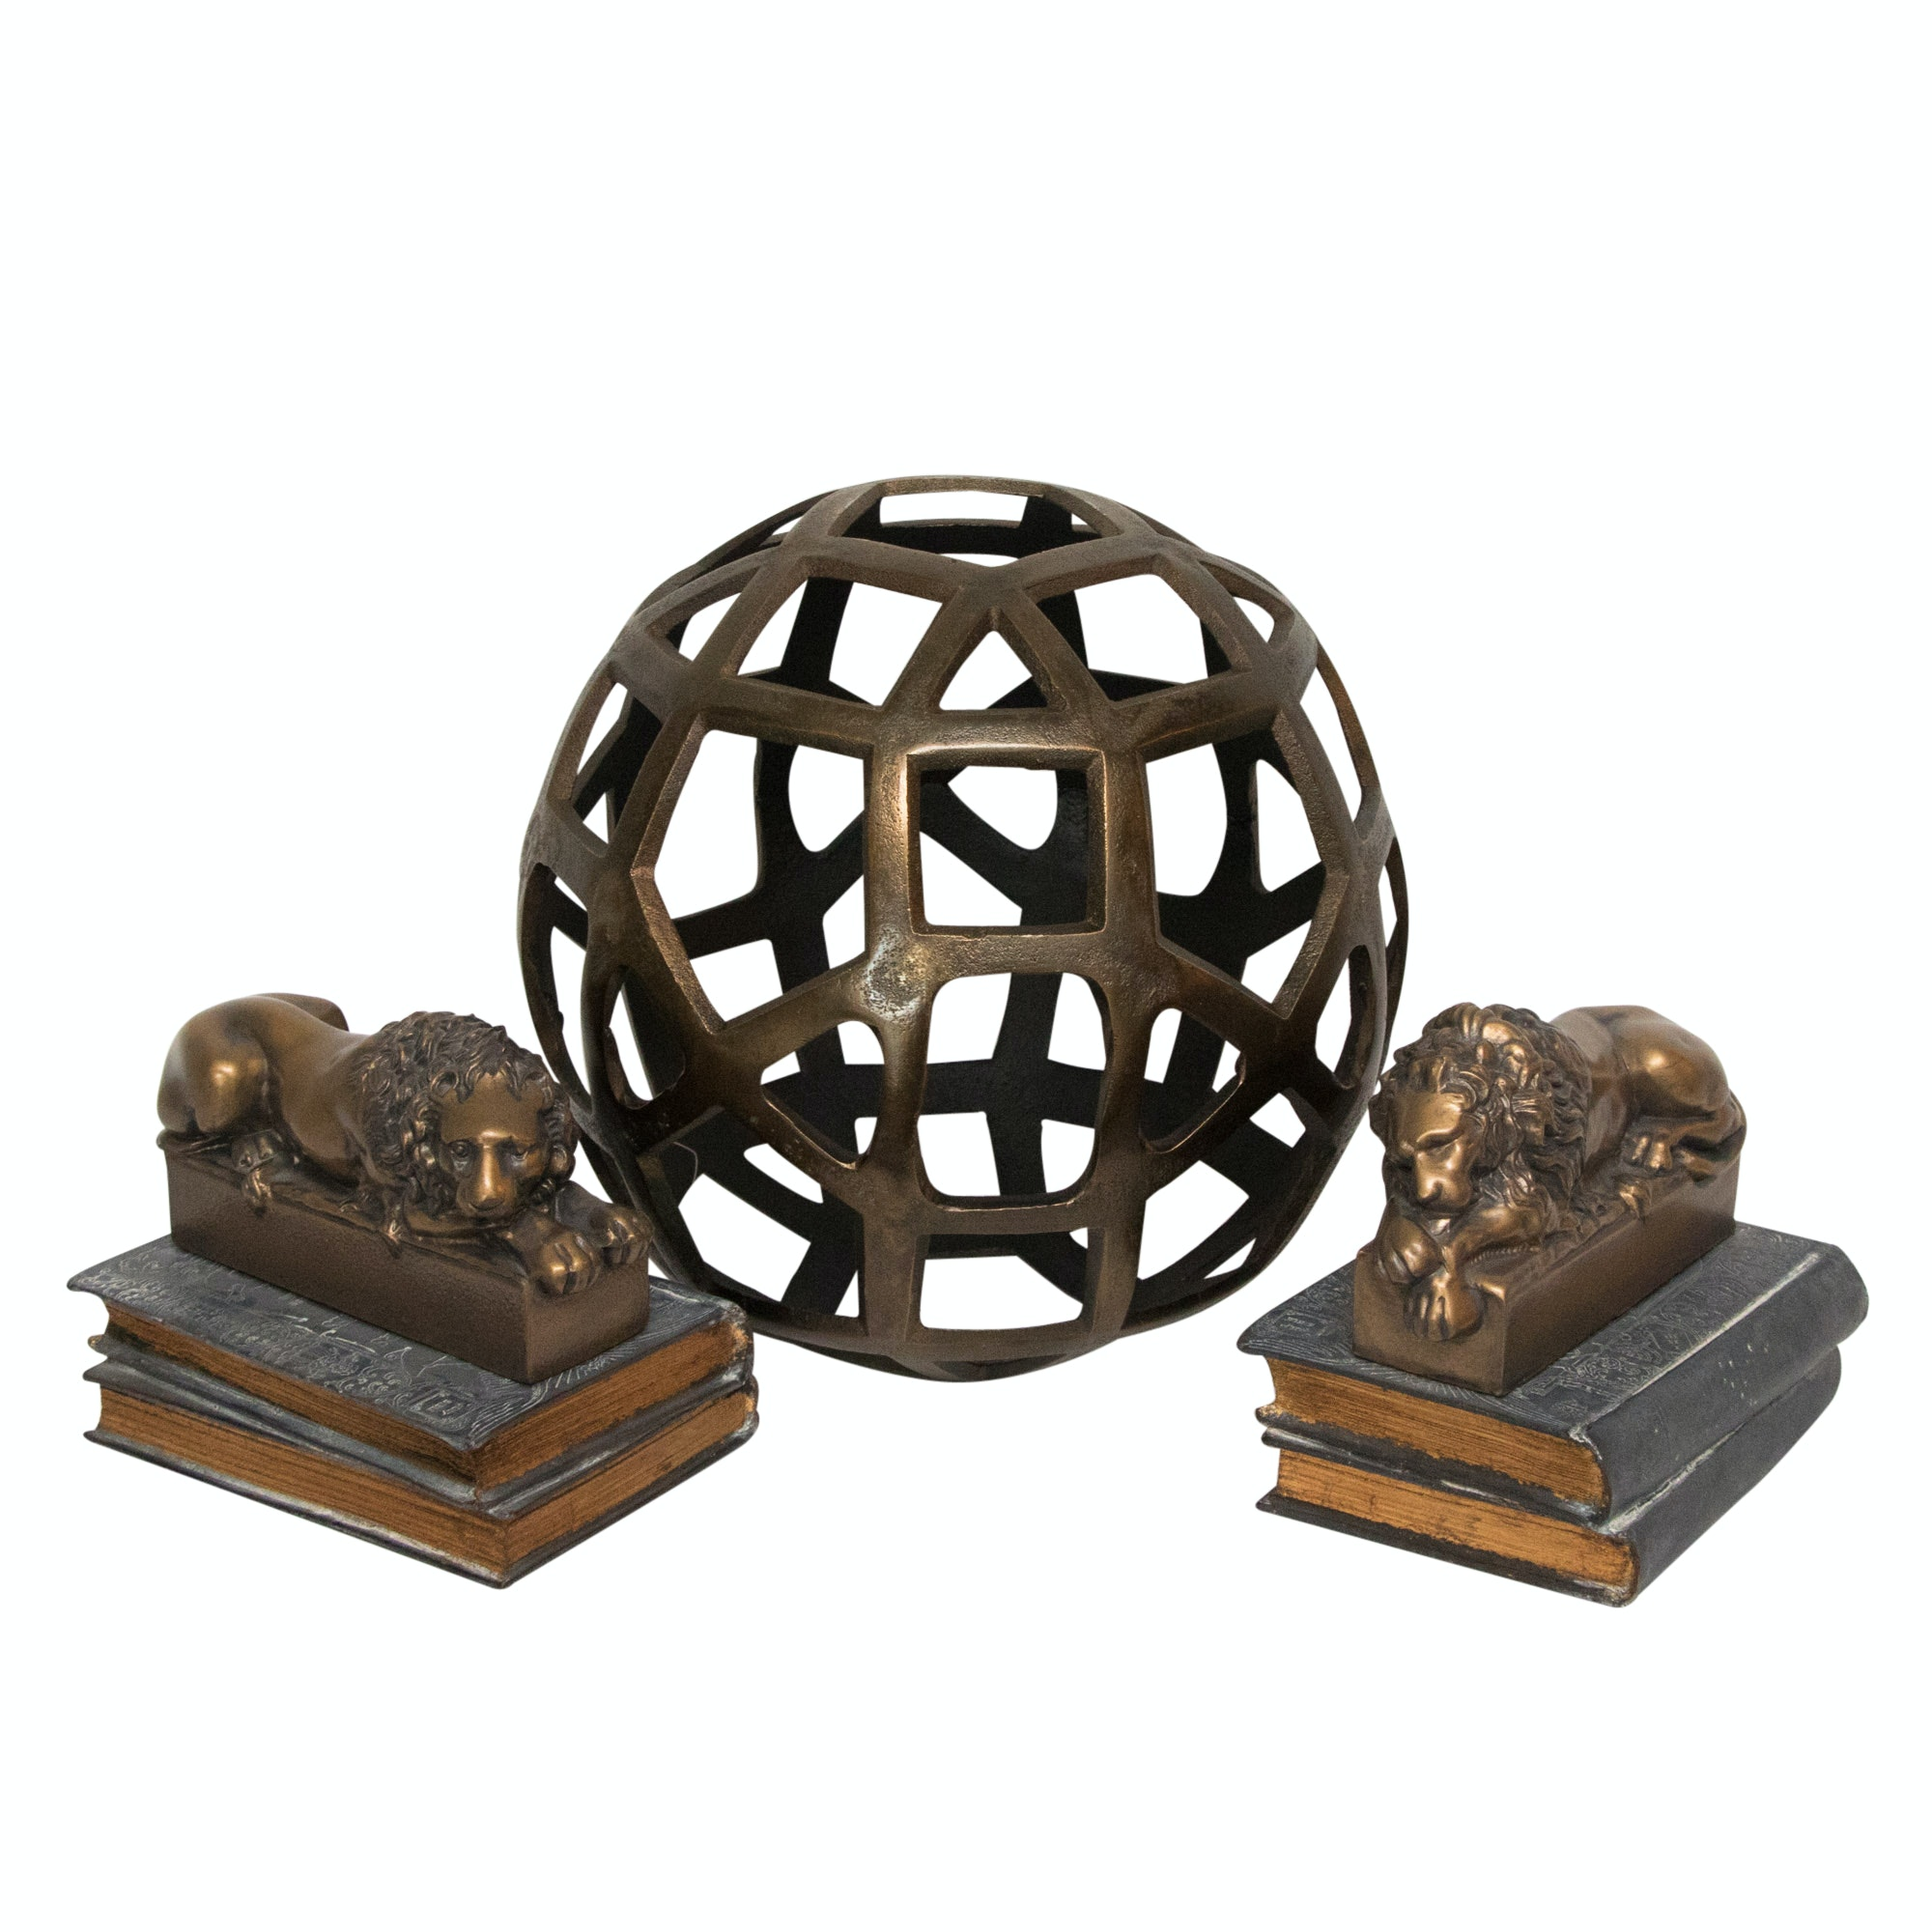 Sand Cast Aluminum Ball by Crate & Barrel with Lion Bookends